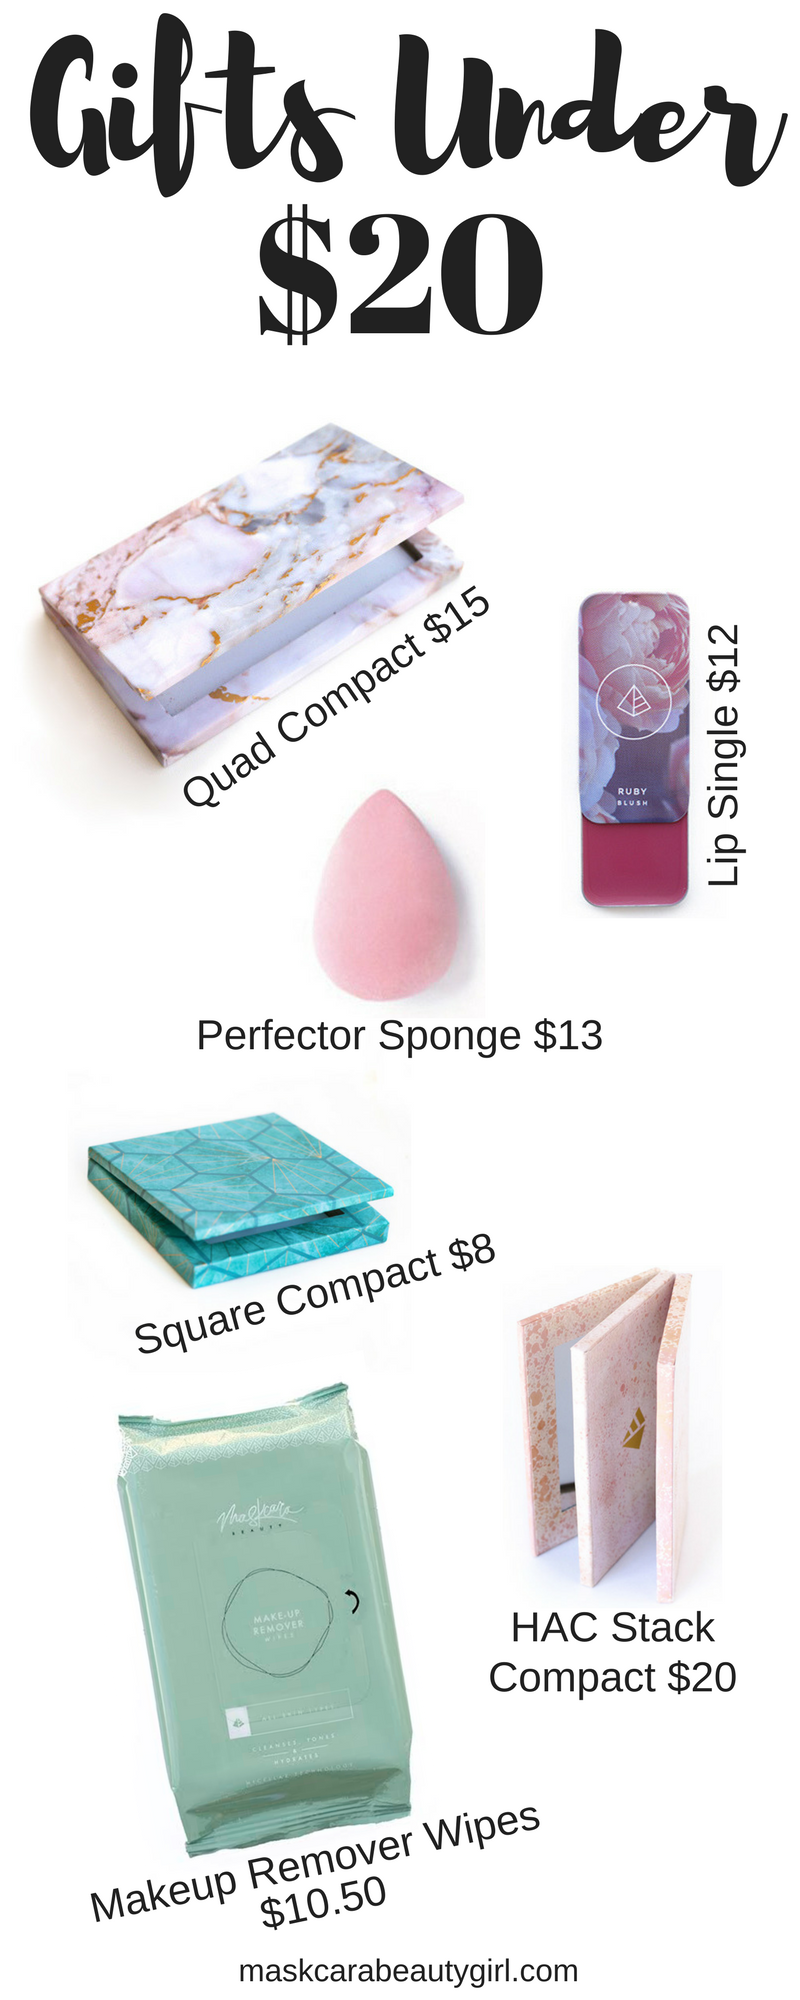 Affordable Christmas Gifts with Maskcara with Maskcara Beauty Girl at www.maskcarabeautygirl.com